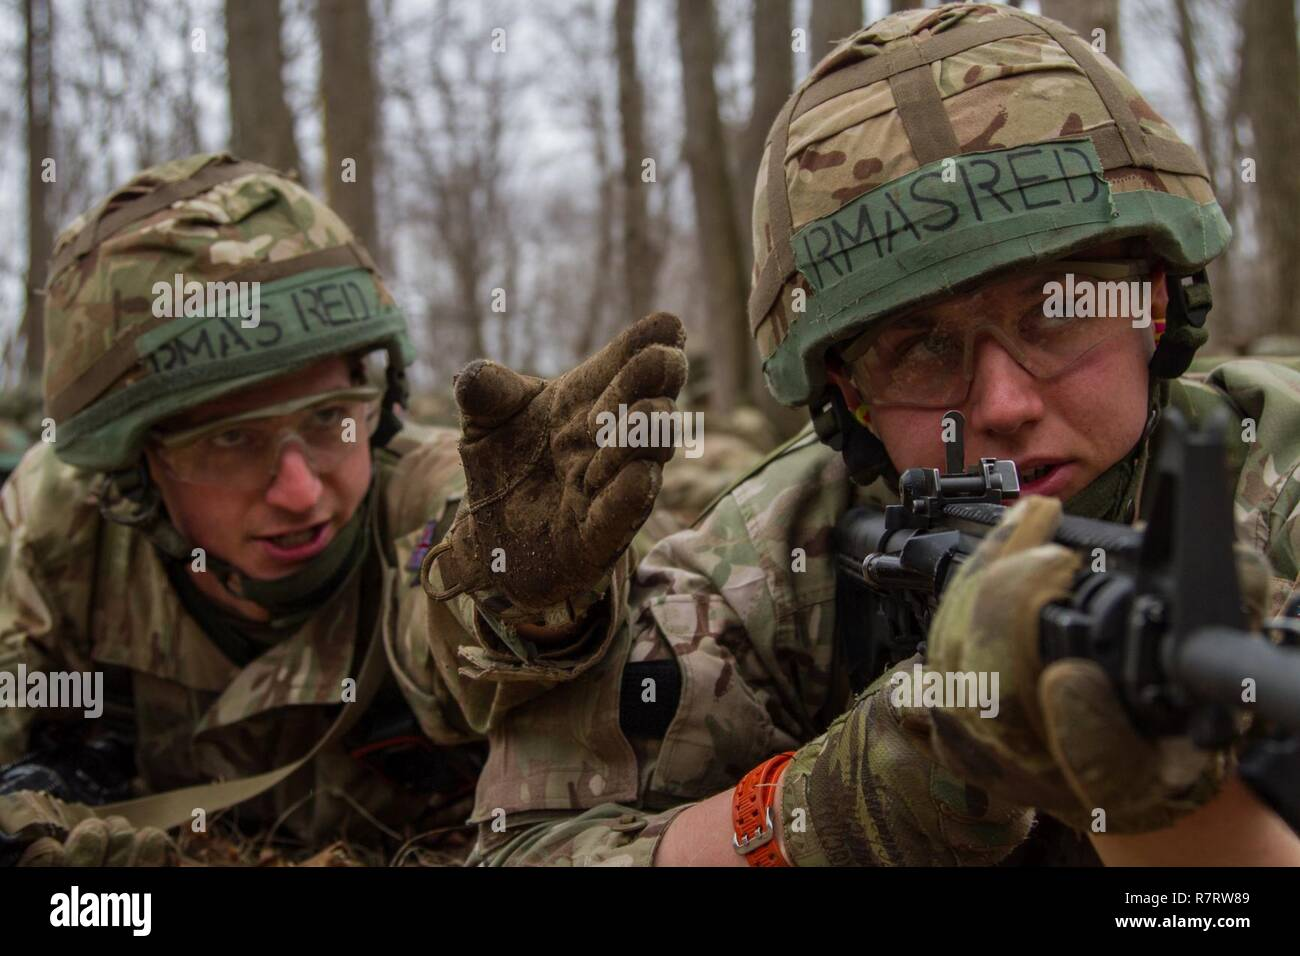 A British army cadet squad leader directs a fellow cadet on